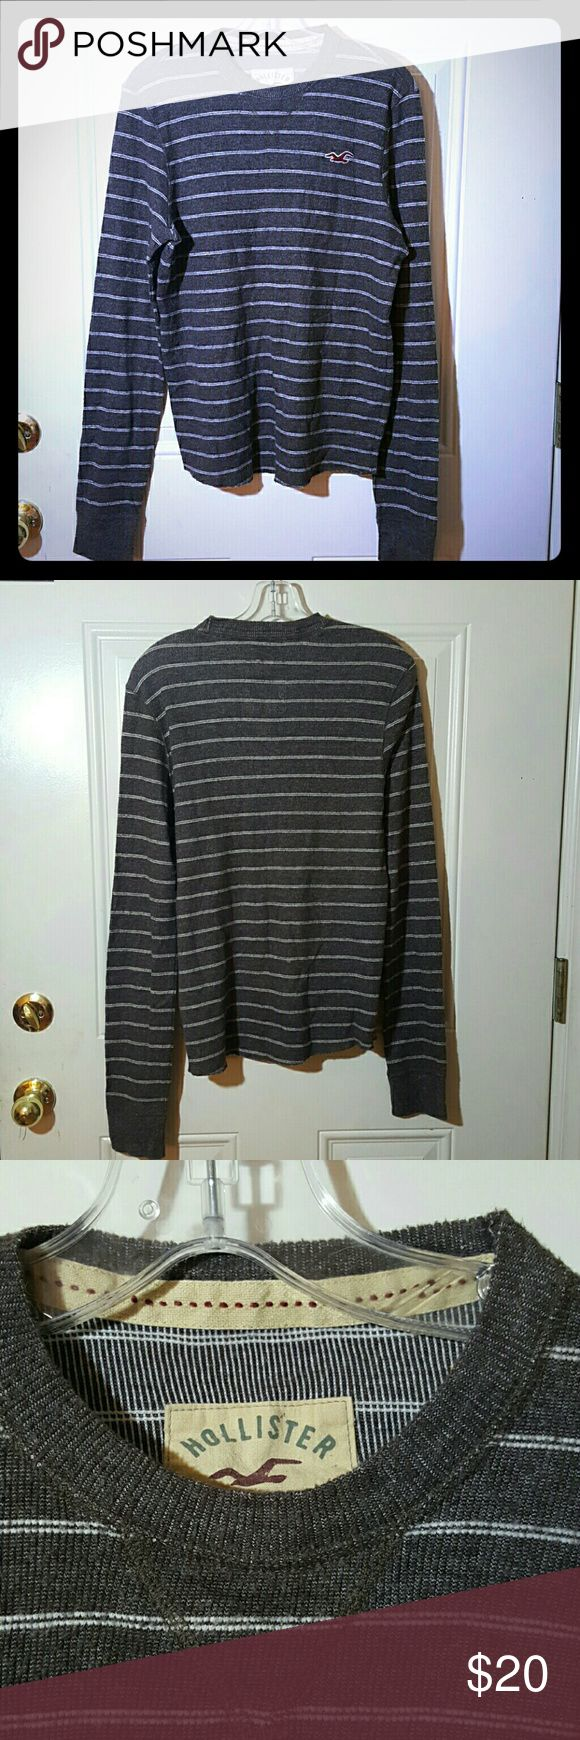 Hollister striped sweater Mens hollister striped sweater  Gray with white stripes Size L  Thin sweater perfect for spring/summer on a chilly or windy day! ( or night!)   In excellent condition. Hollister Sweaters